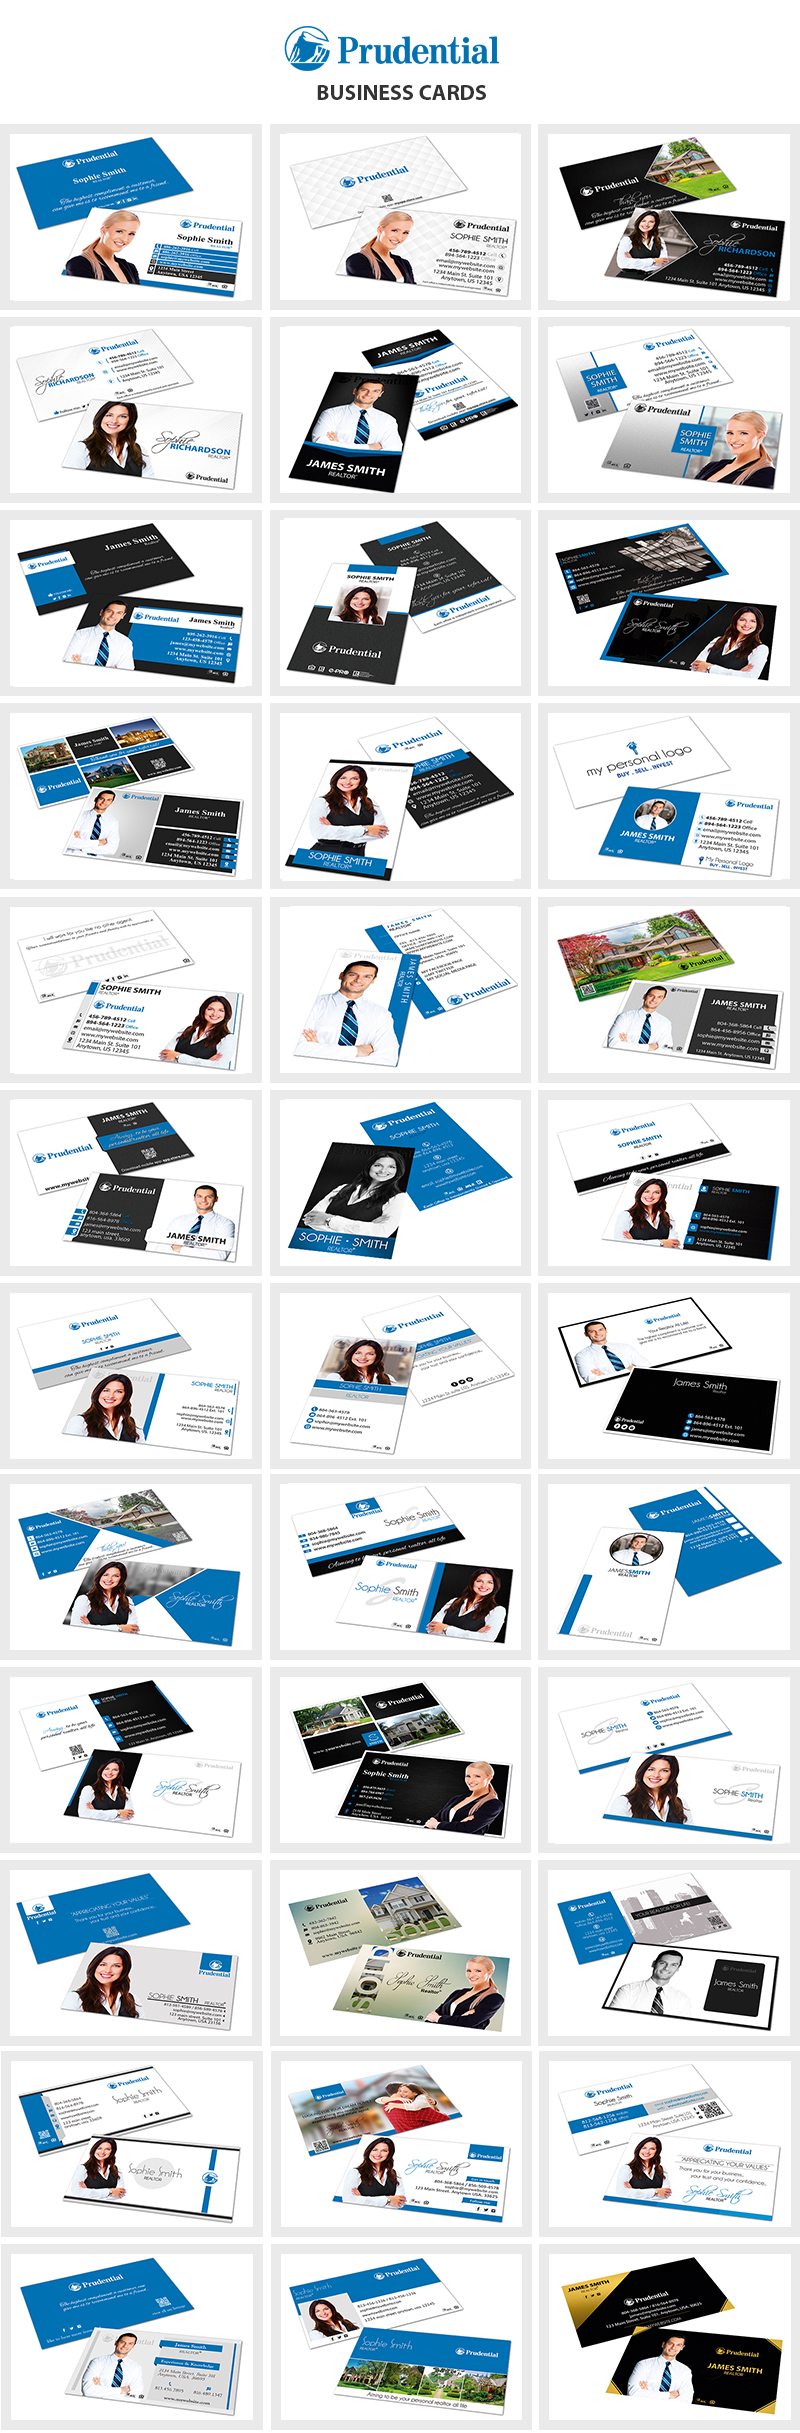 Prudential Financial Business Cards, Prudential Realtor Business Cards, Prudential Agent Business Cards, Prudential Broker Business Cards, Prudential Office Business Cards